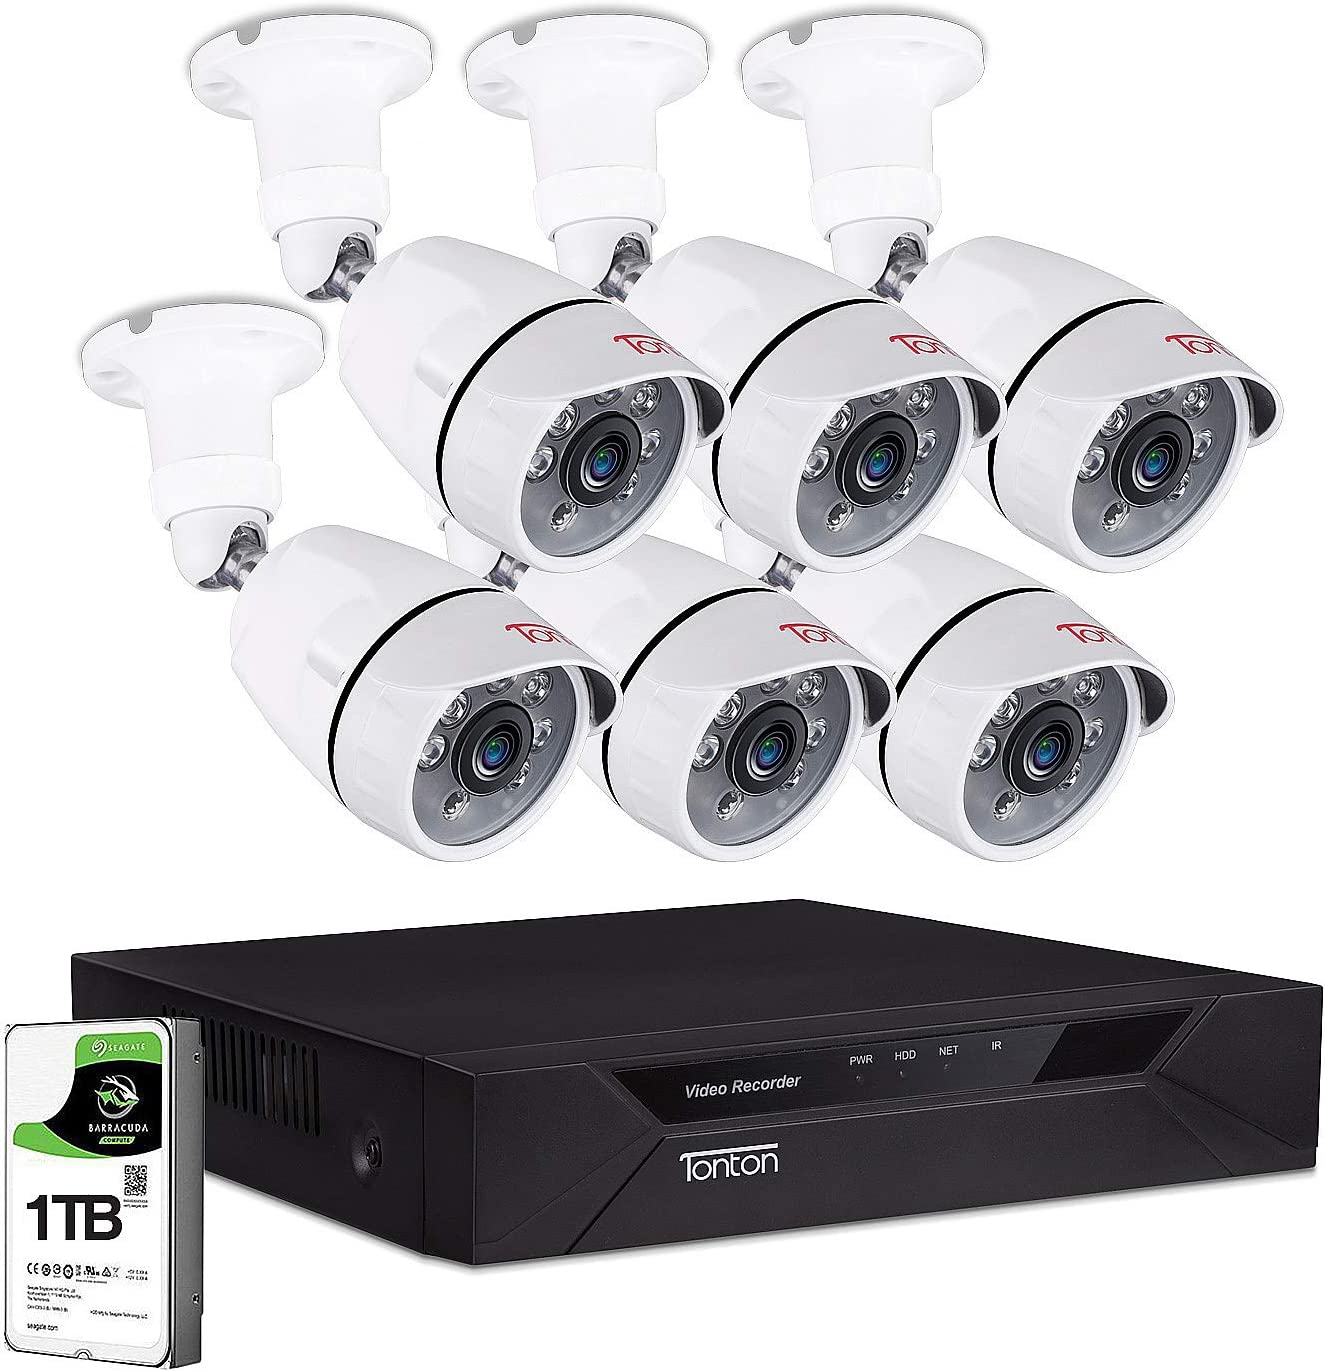 Amazon.com : Tonton 1080P Surveillance Camera System Outdoor, H.265+ 8CH  5MP Lite Hybrid DVR with 1TB HDD and 6PCS 2MP Bullet Security Camera, 100ft  Night Vision, Free App Remote Access : Camera | Hybrid Surveillance Camera Wiring Diagram |  | Amazon.com